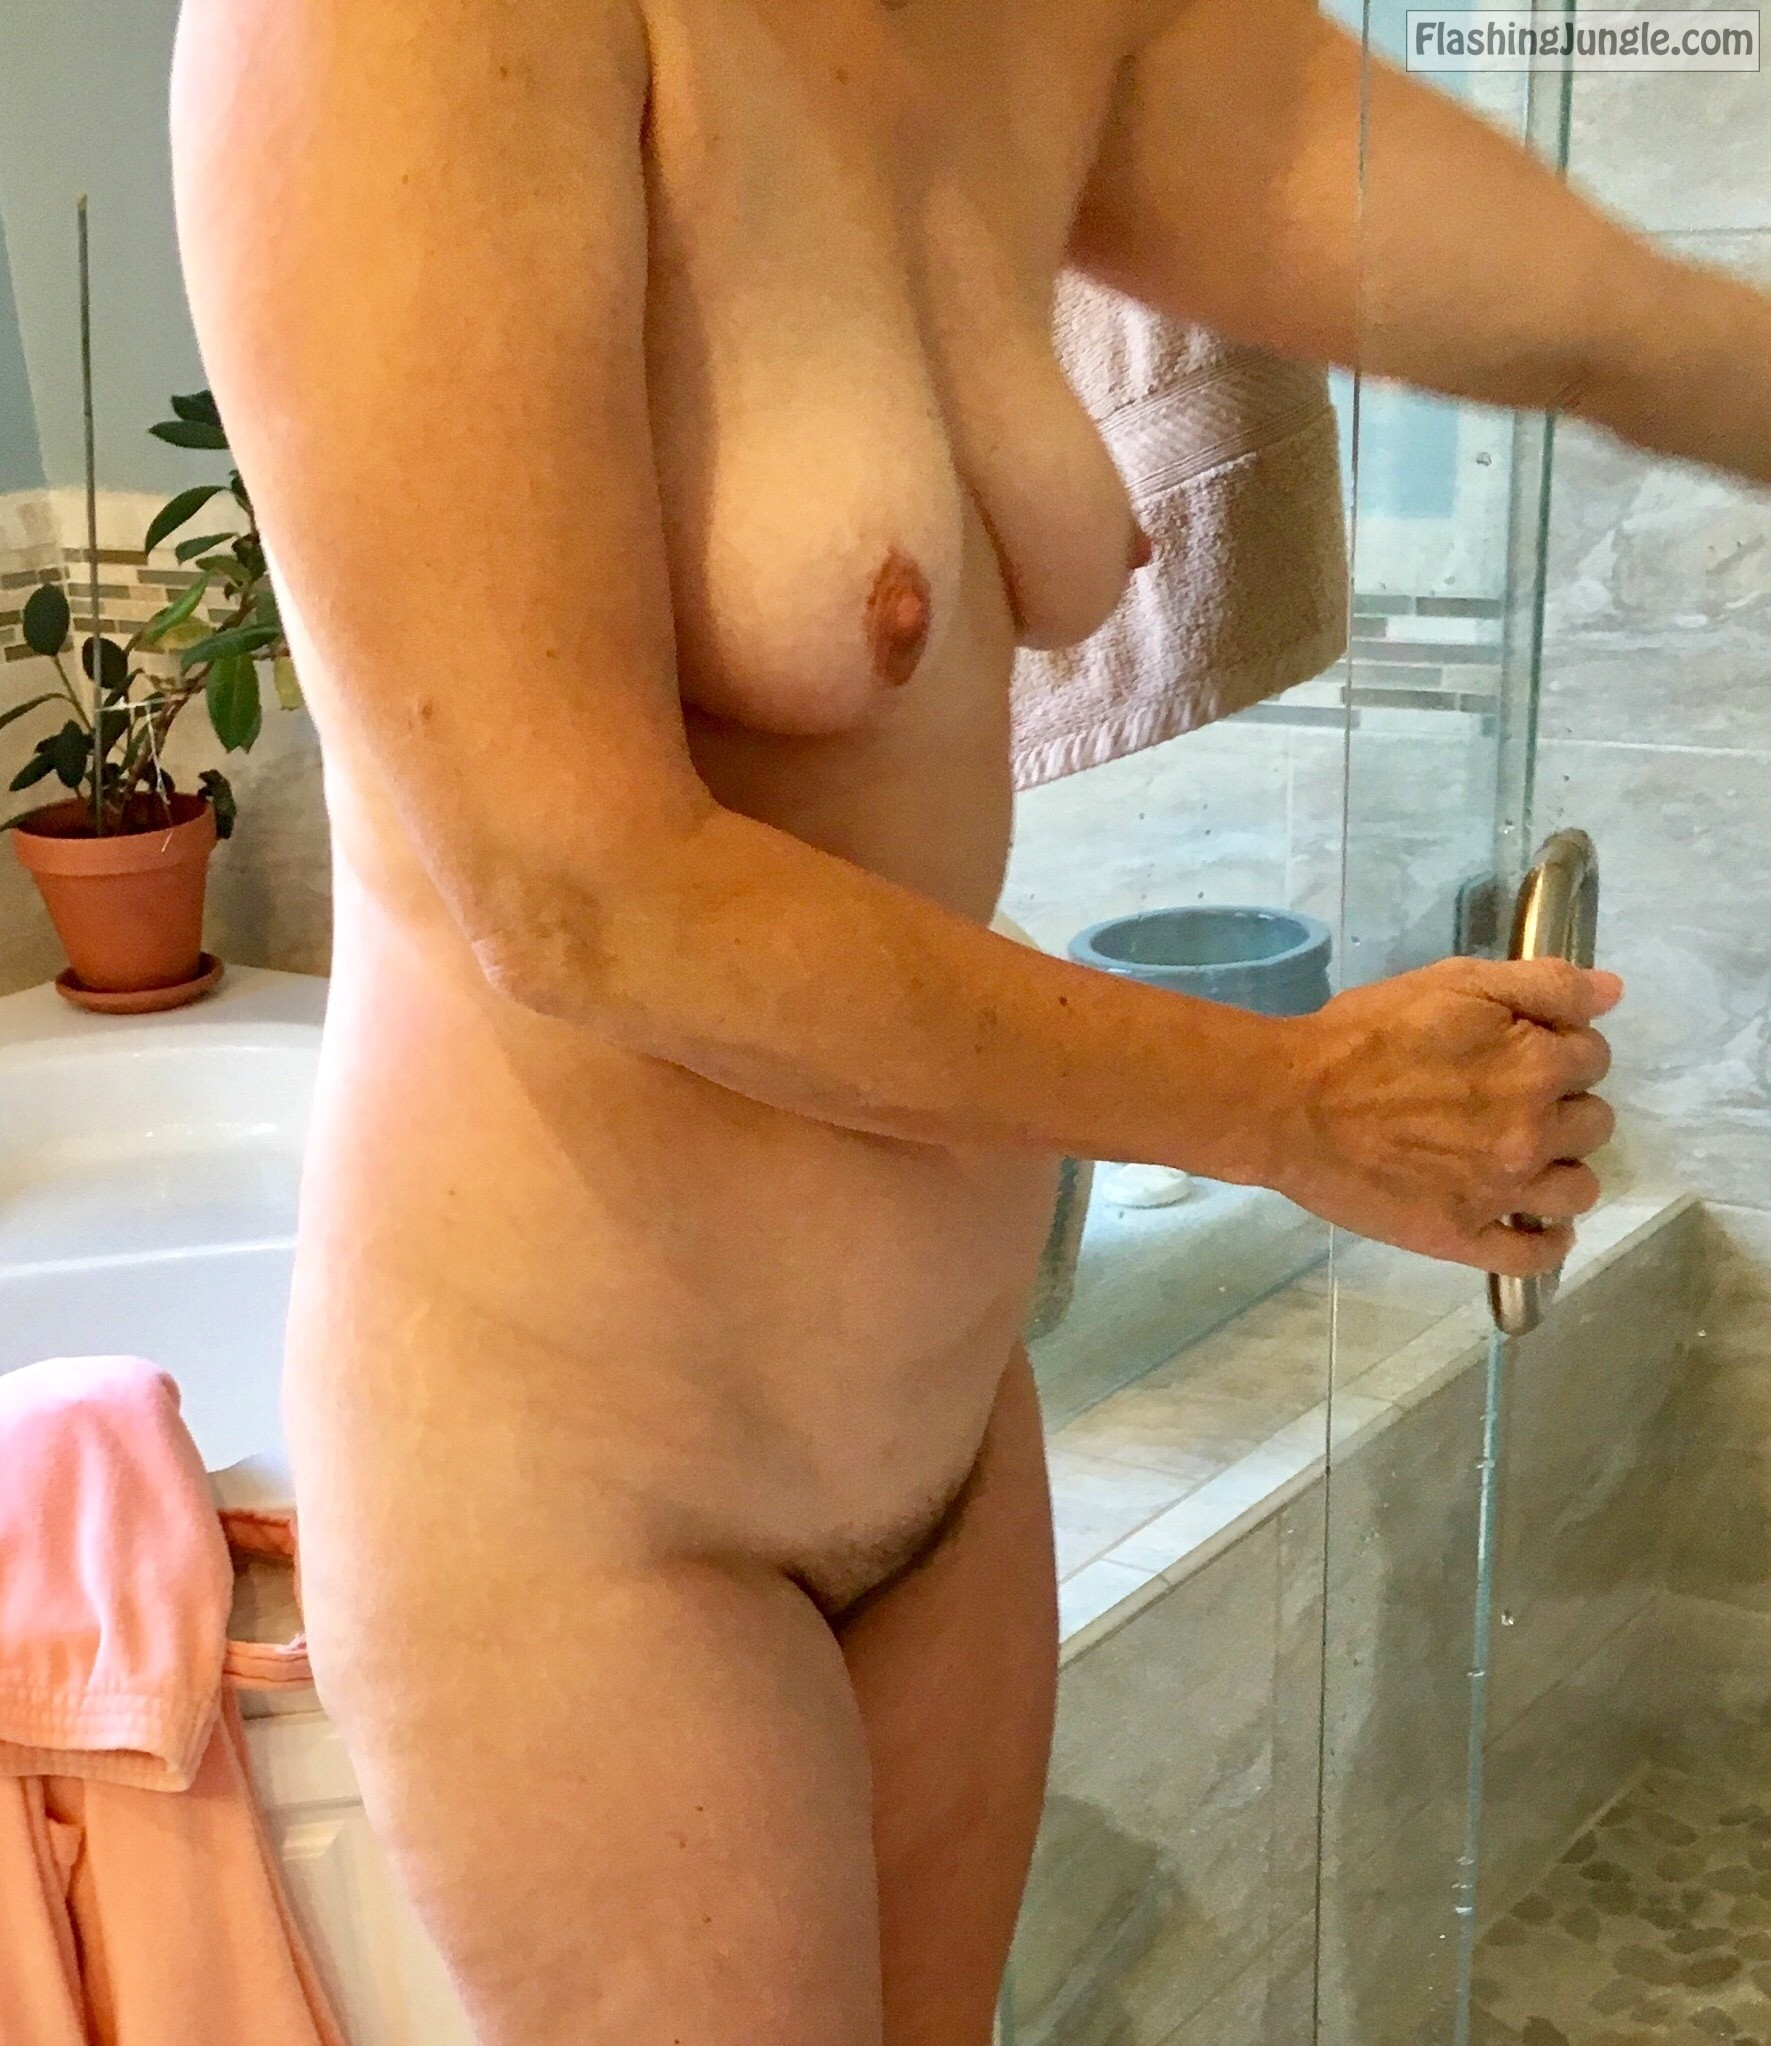 Real Nudity MILF Flashing Pics Hotwife Pics